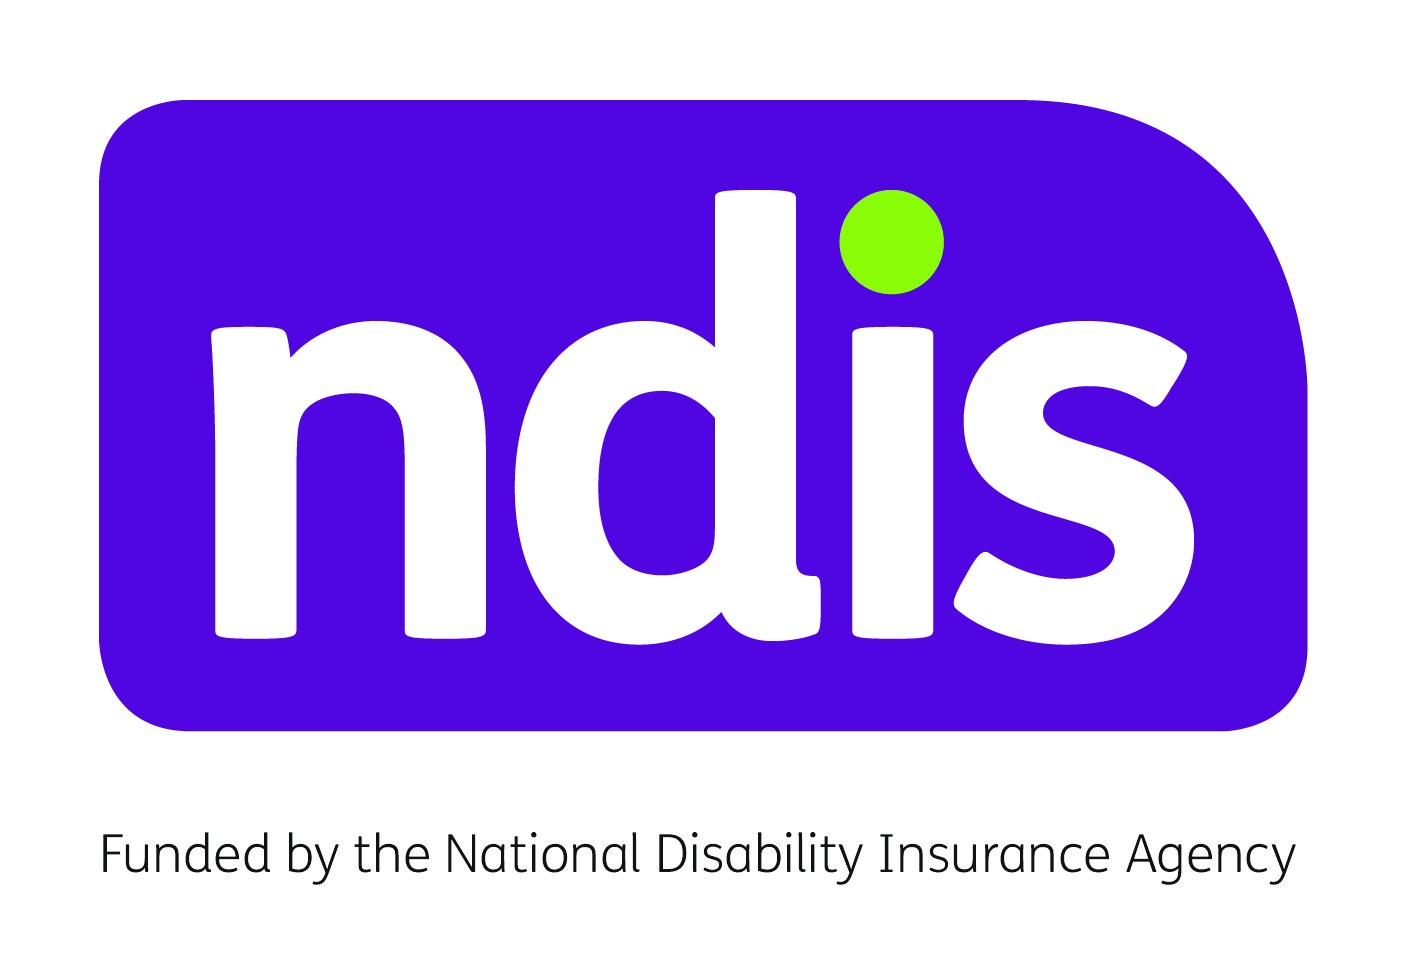 NDIS - funded by the National Disability Insurance Agency